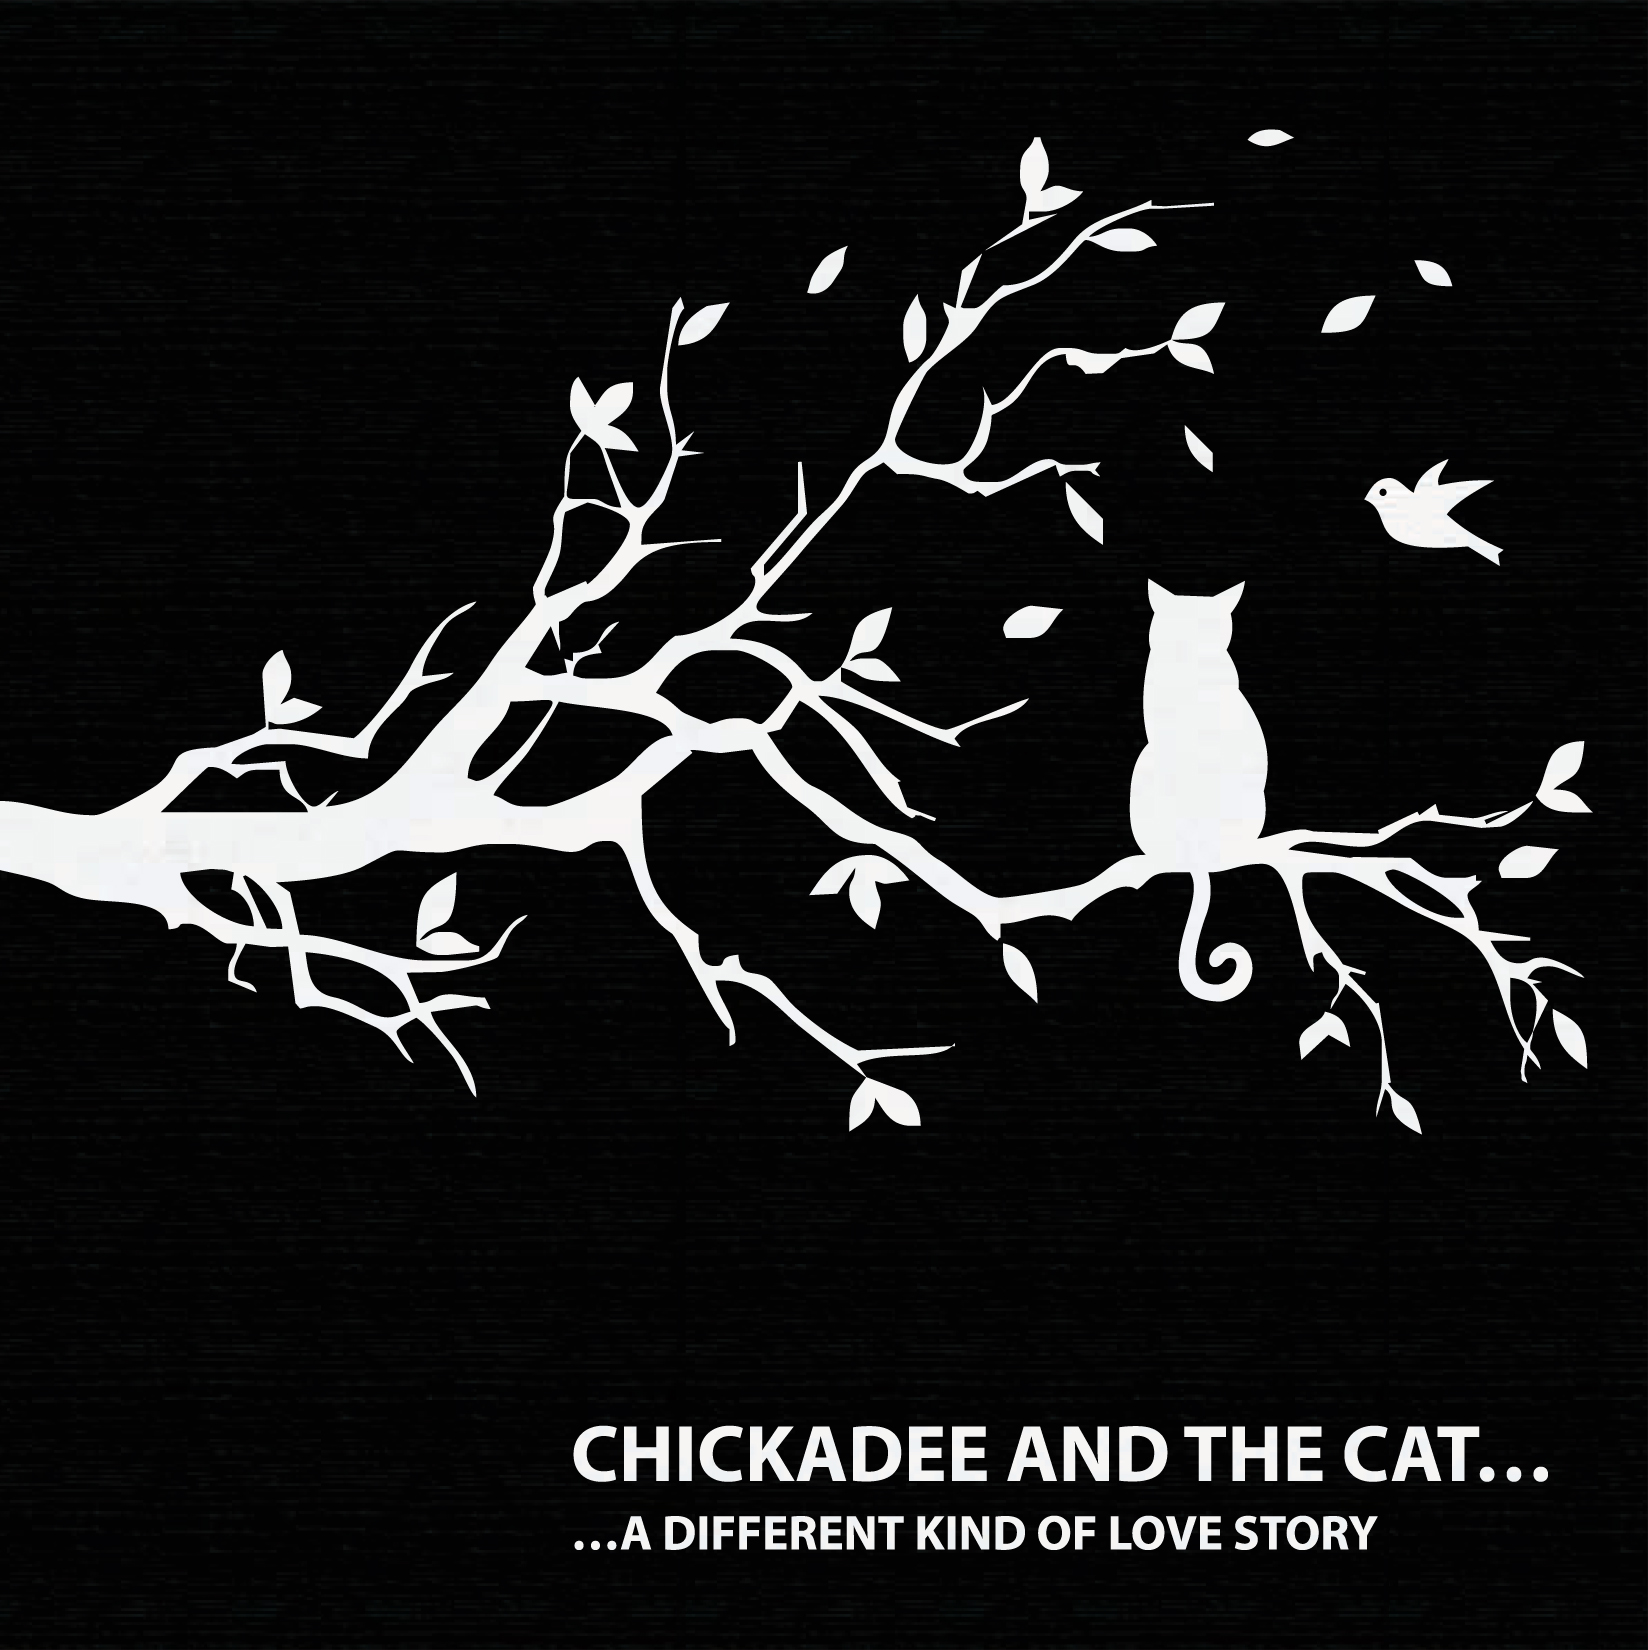 Chickadee and the Cat